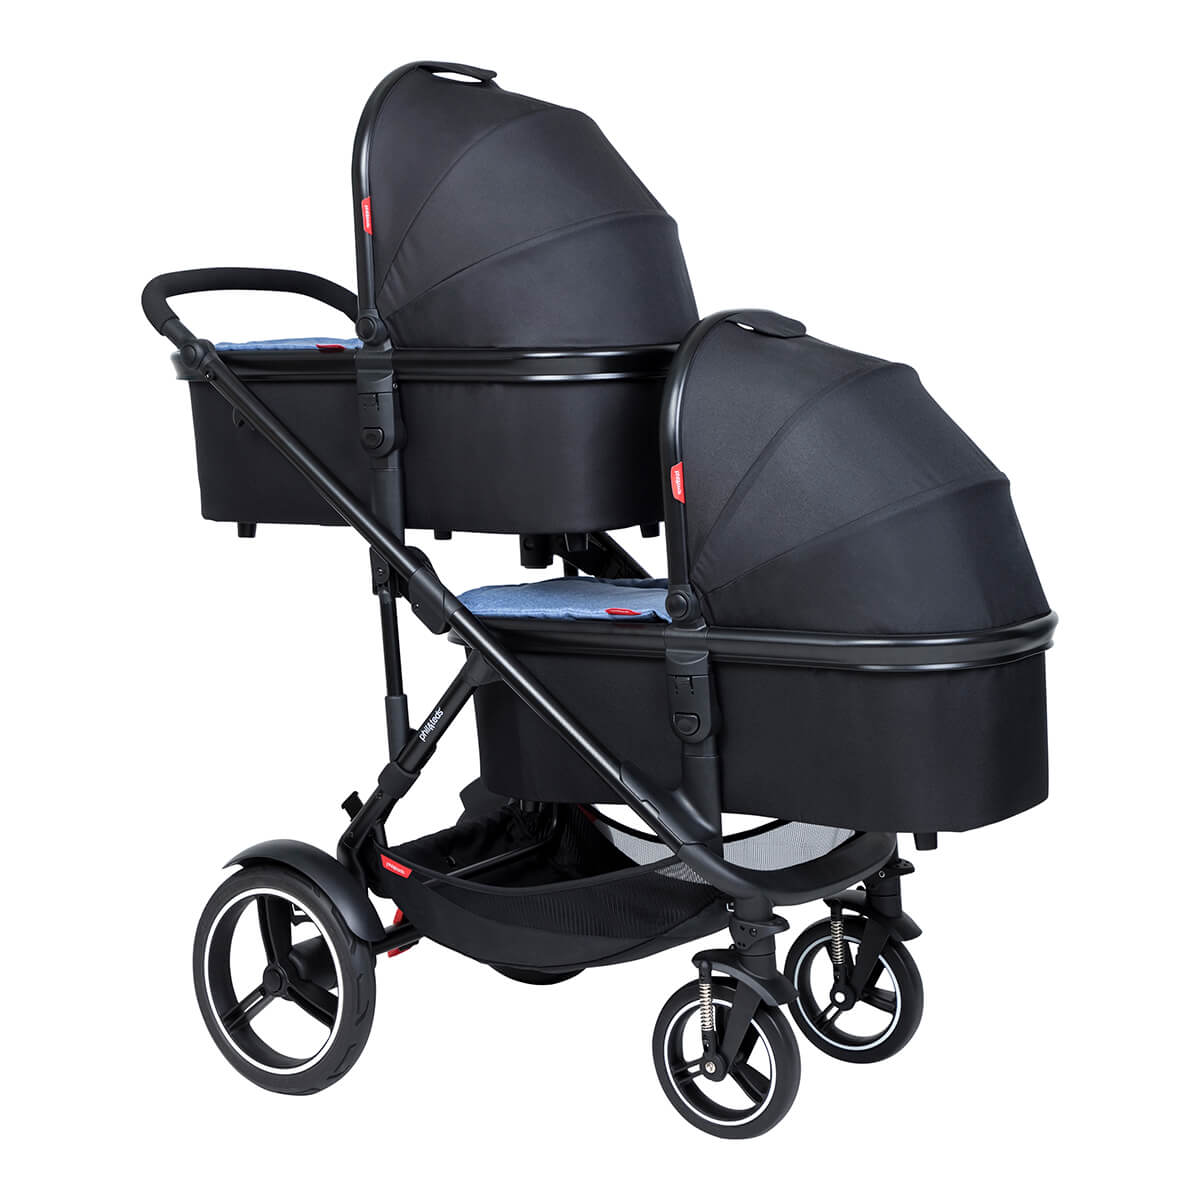 https://cdn.accentuate.io/4509867376737/19793940447402/philteds-voyager-inline-buggy-with-double-snug-carrycots-v1626485358229.jpg?1200x1200